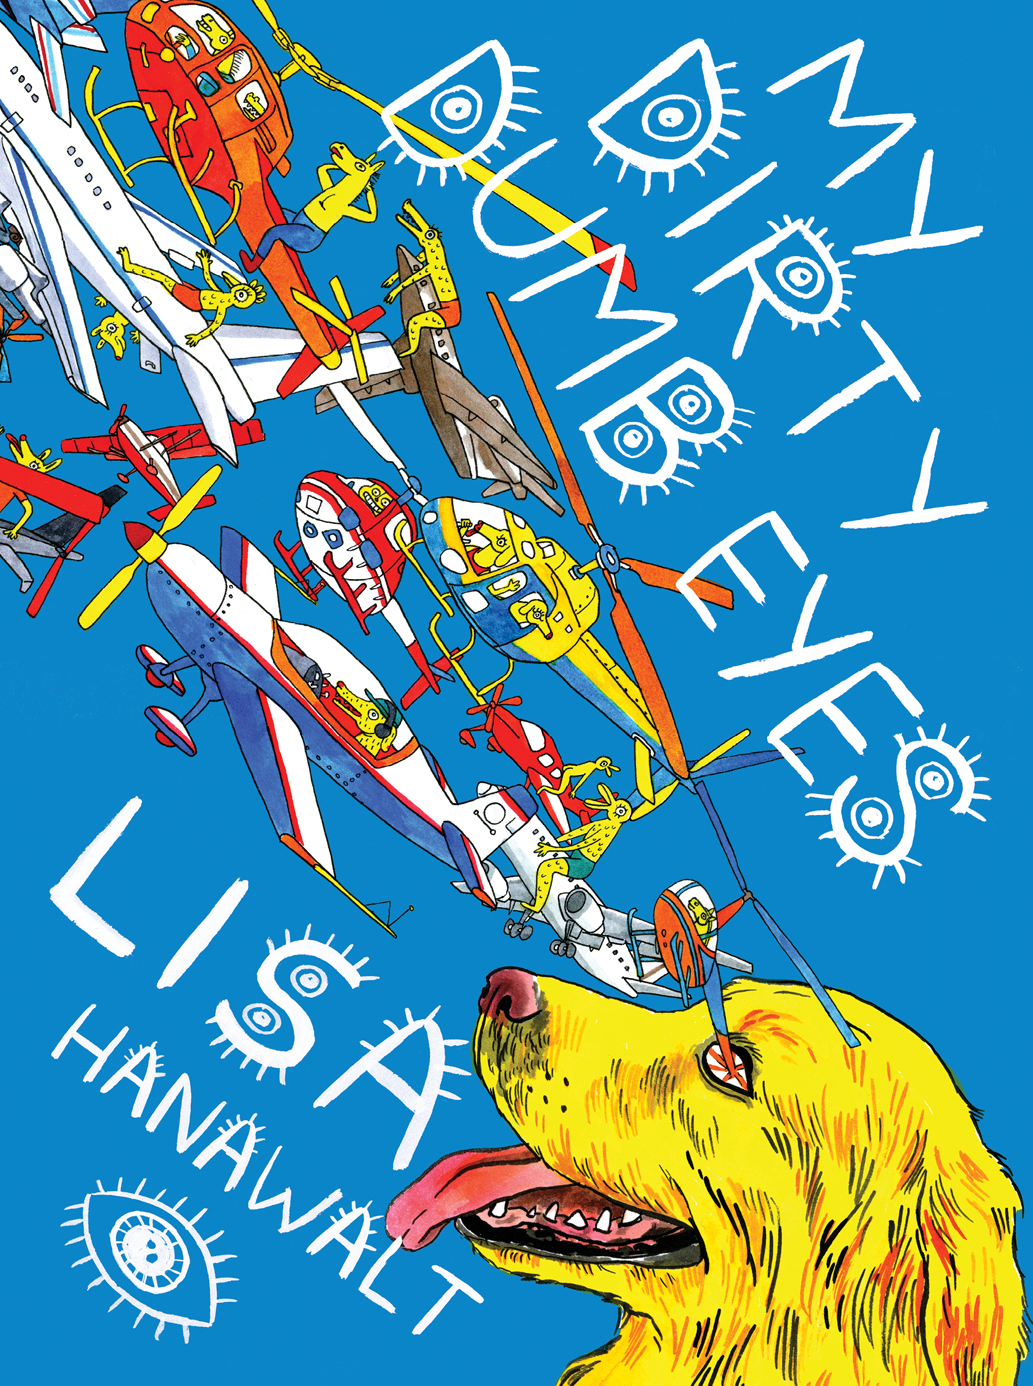 Book Launch: My Dirty Dumb Eyes by Lisa Hanawalt